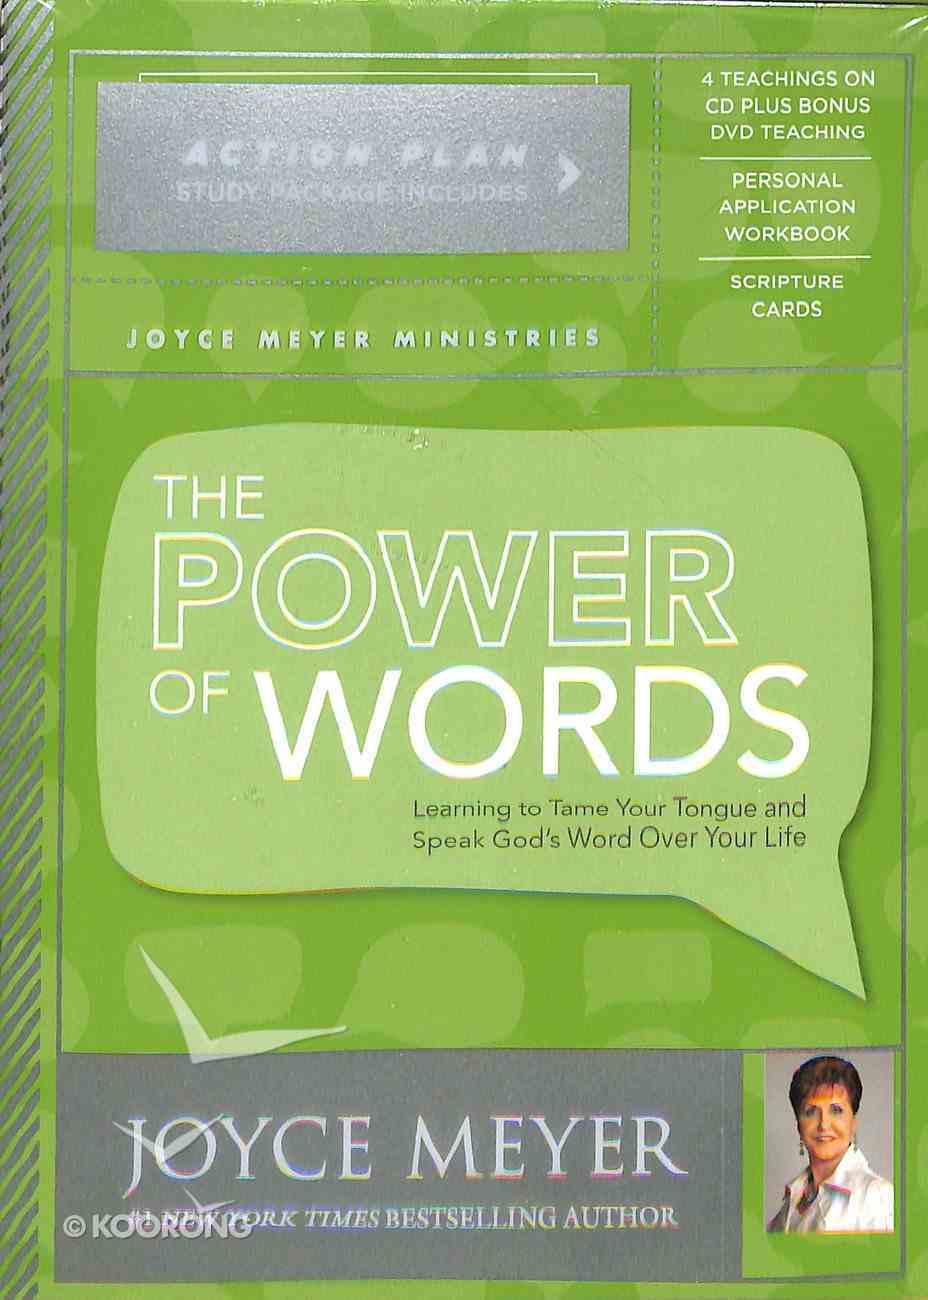 The Power of Words Action Plan (Kit Includes 5 Sessions- 4 Audio Cd 3 Hour 53 Min And 1 Video Dvd 1 Hour 50 Min, Study Guide, Scripture Cards) Pack